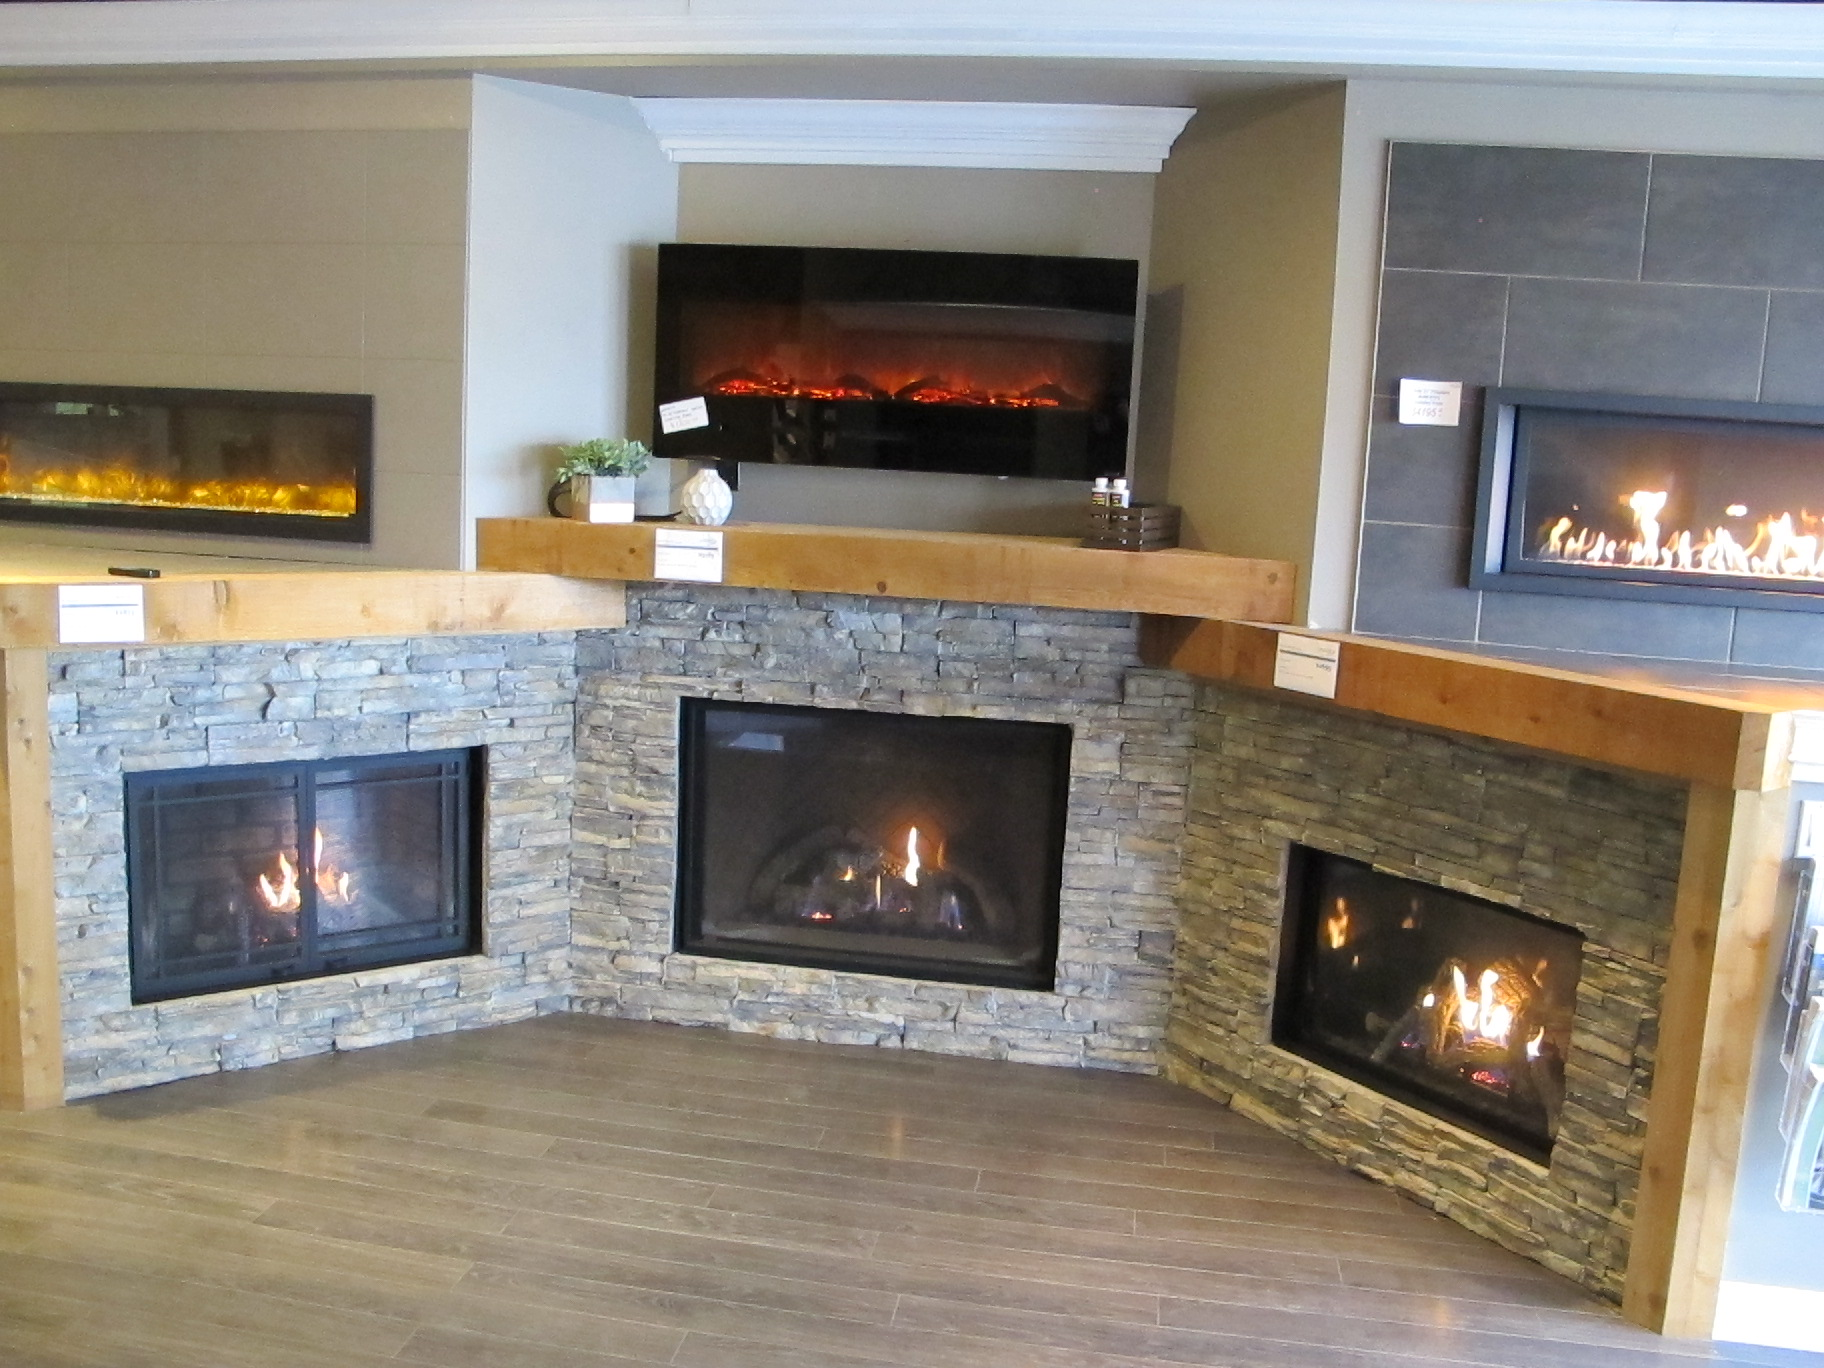 northwind heating u2013 fireplaces water tanks patio heaters